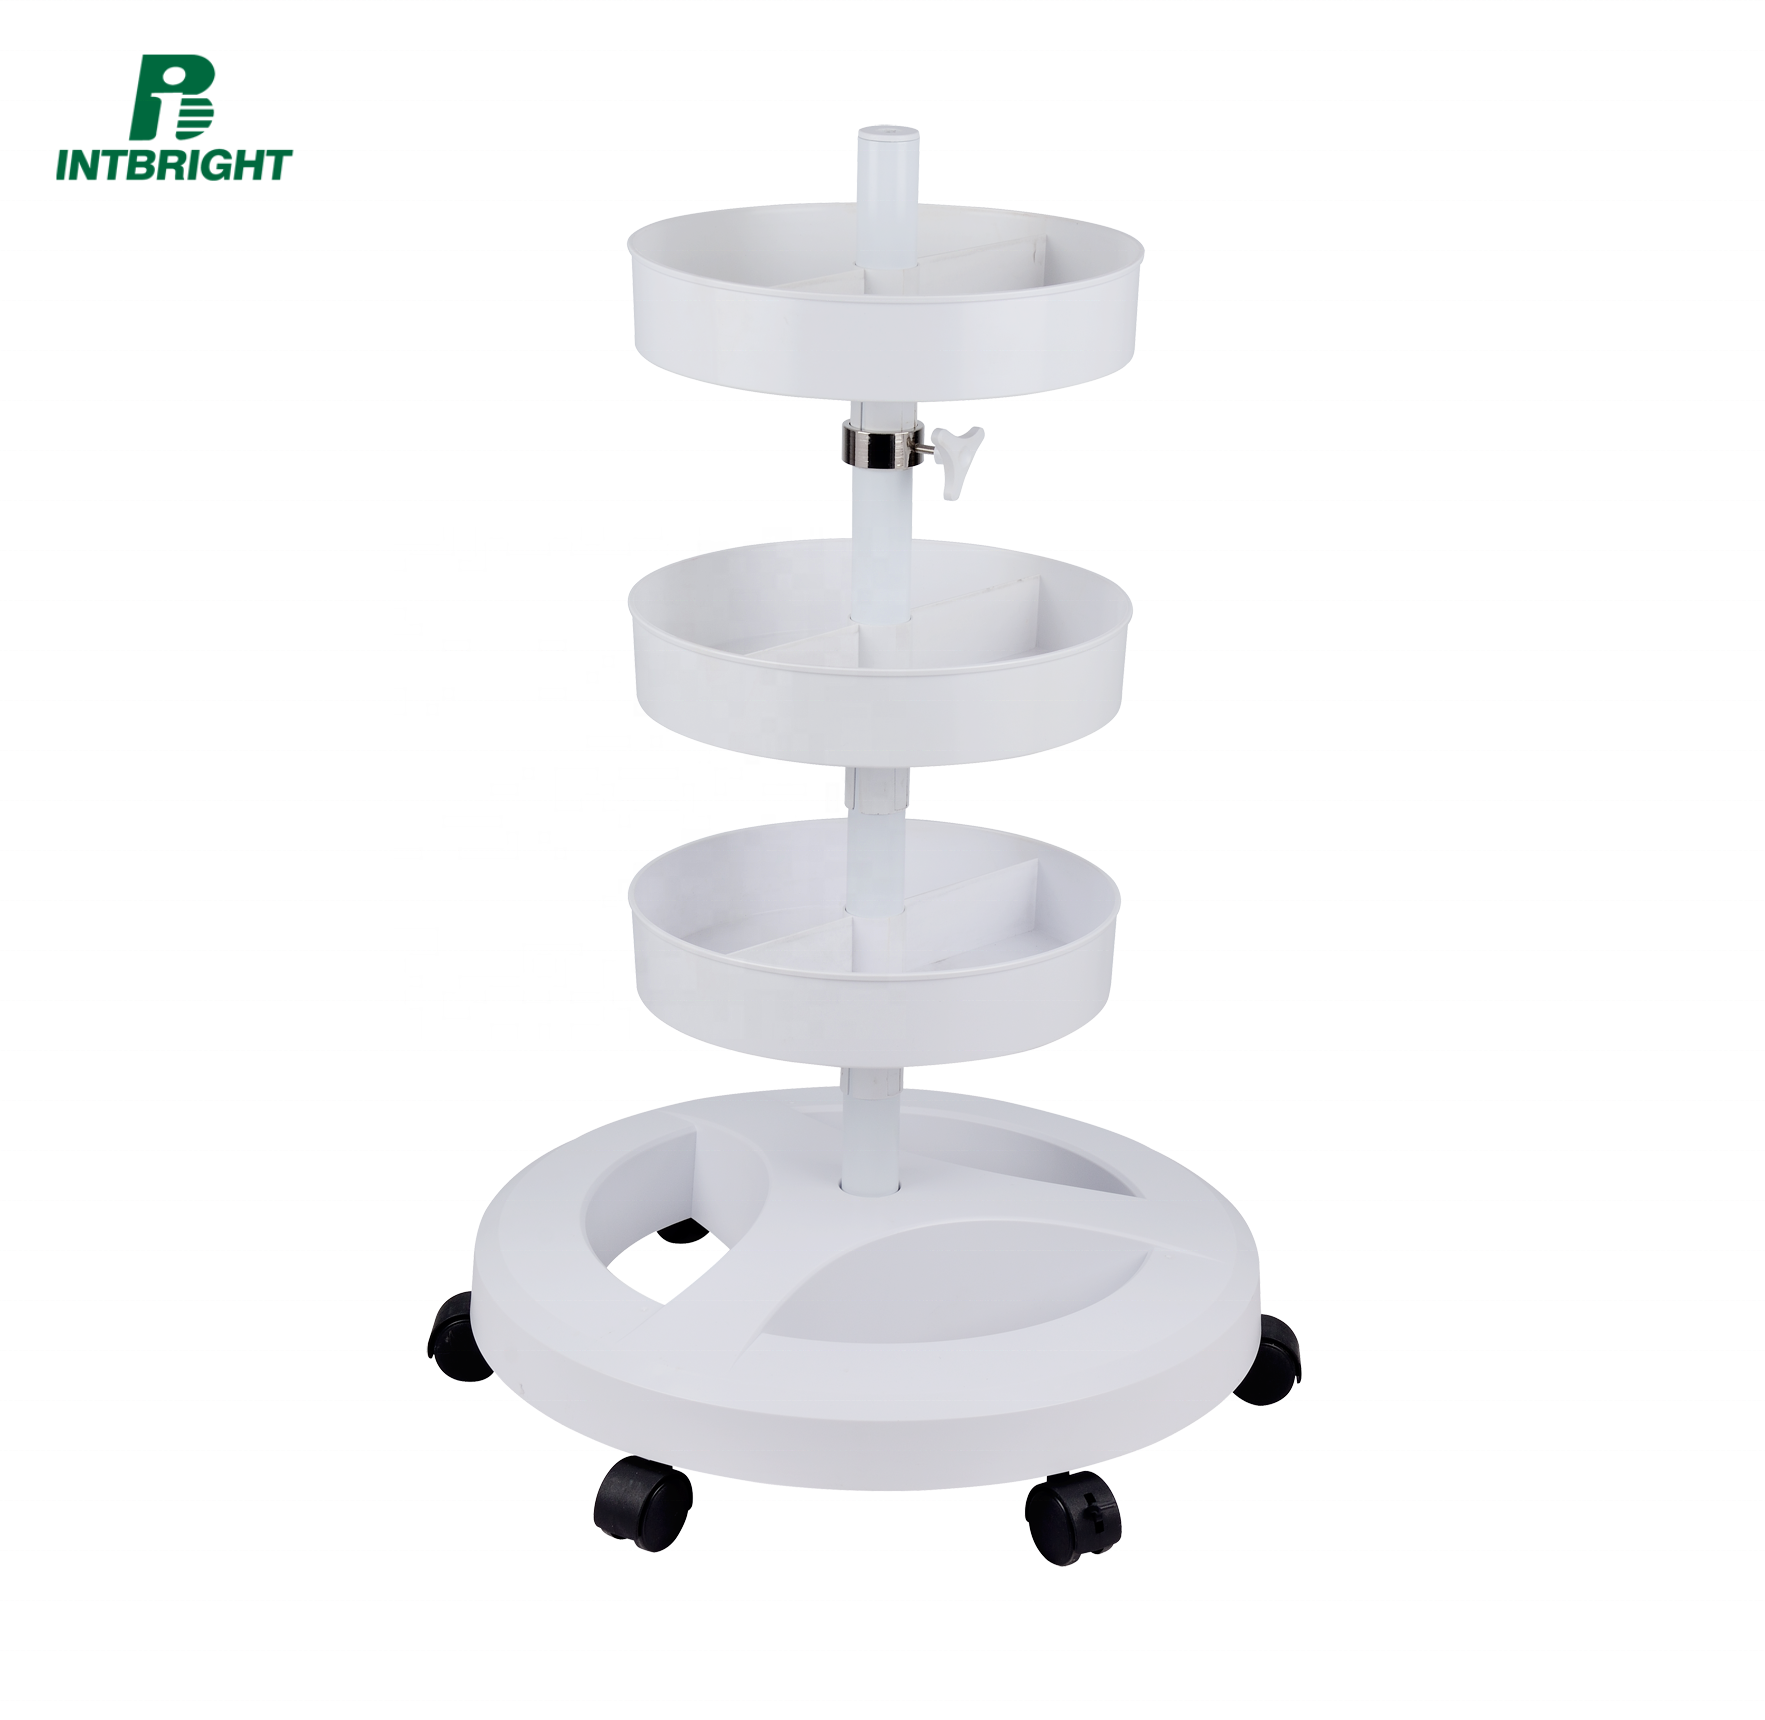 Cosmetic accessories hottest picture beauty salon tray trolley stand for magnifiers lamp base parts furniture cosmetology